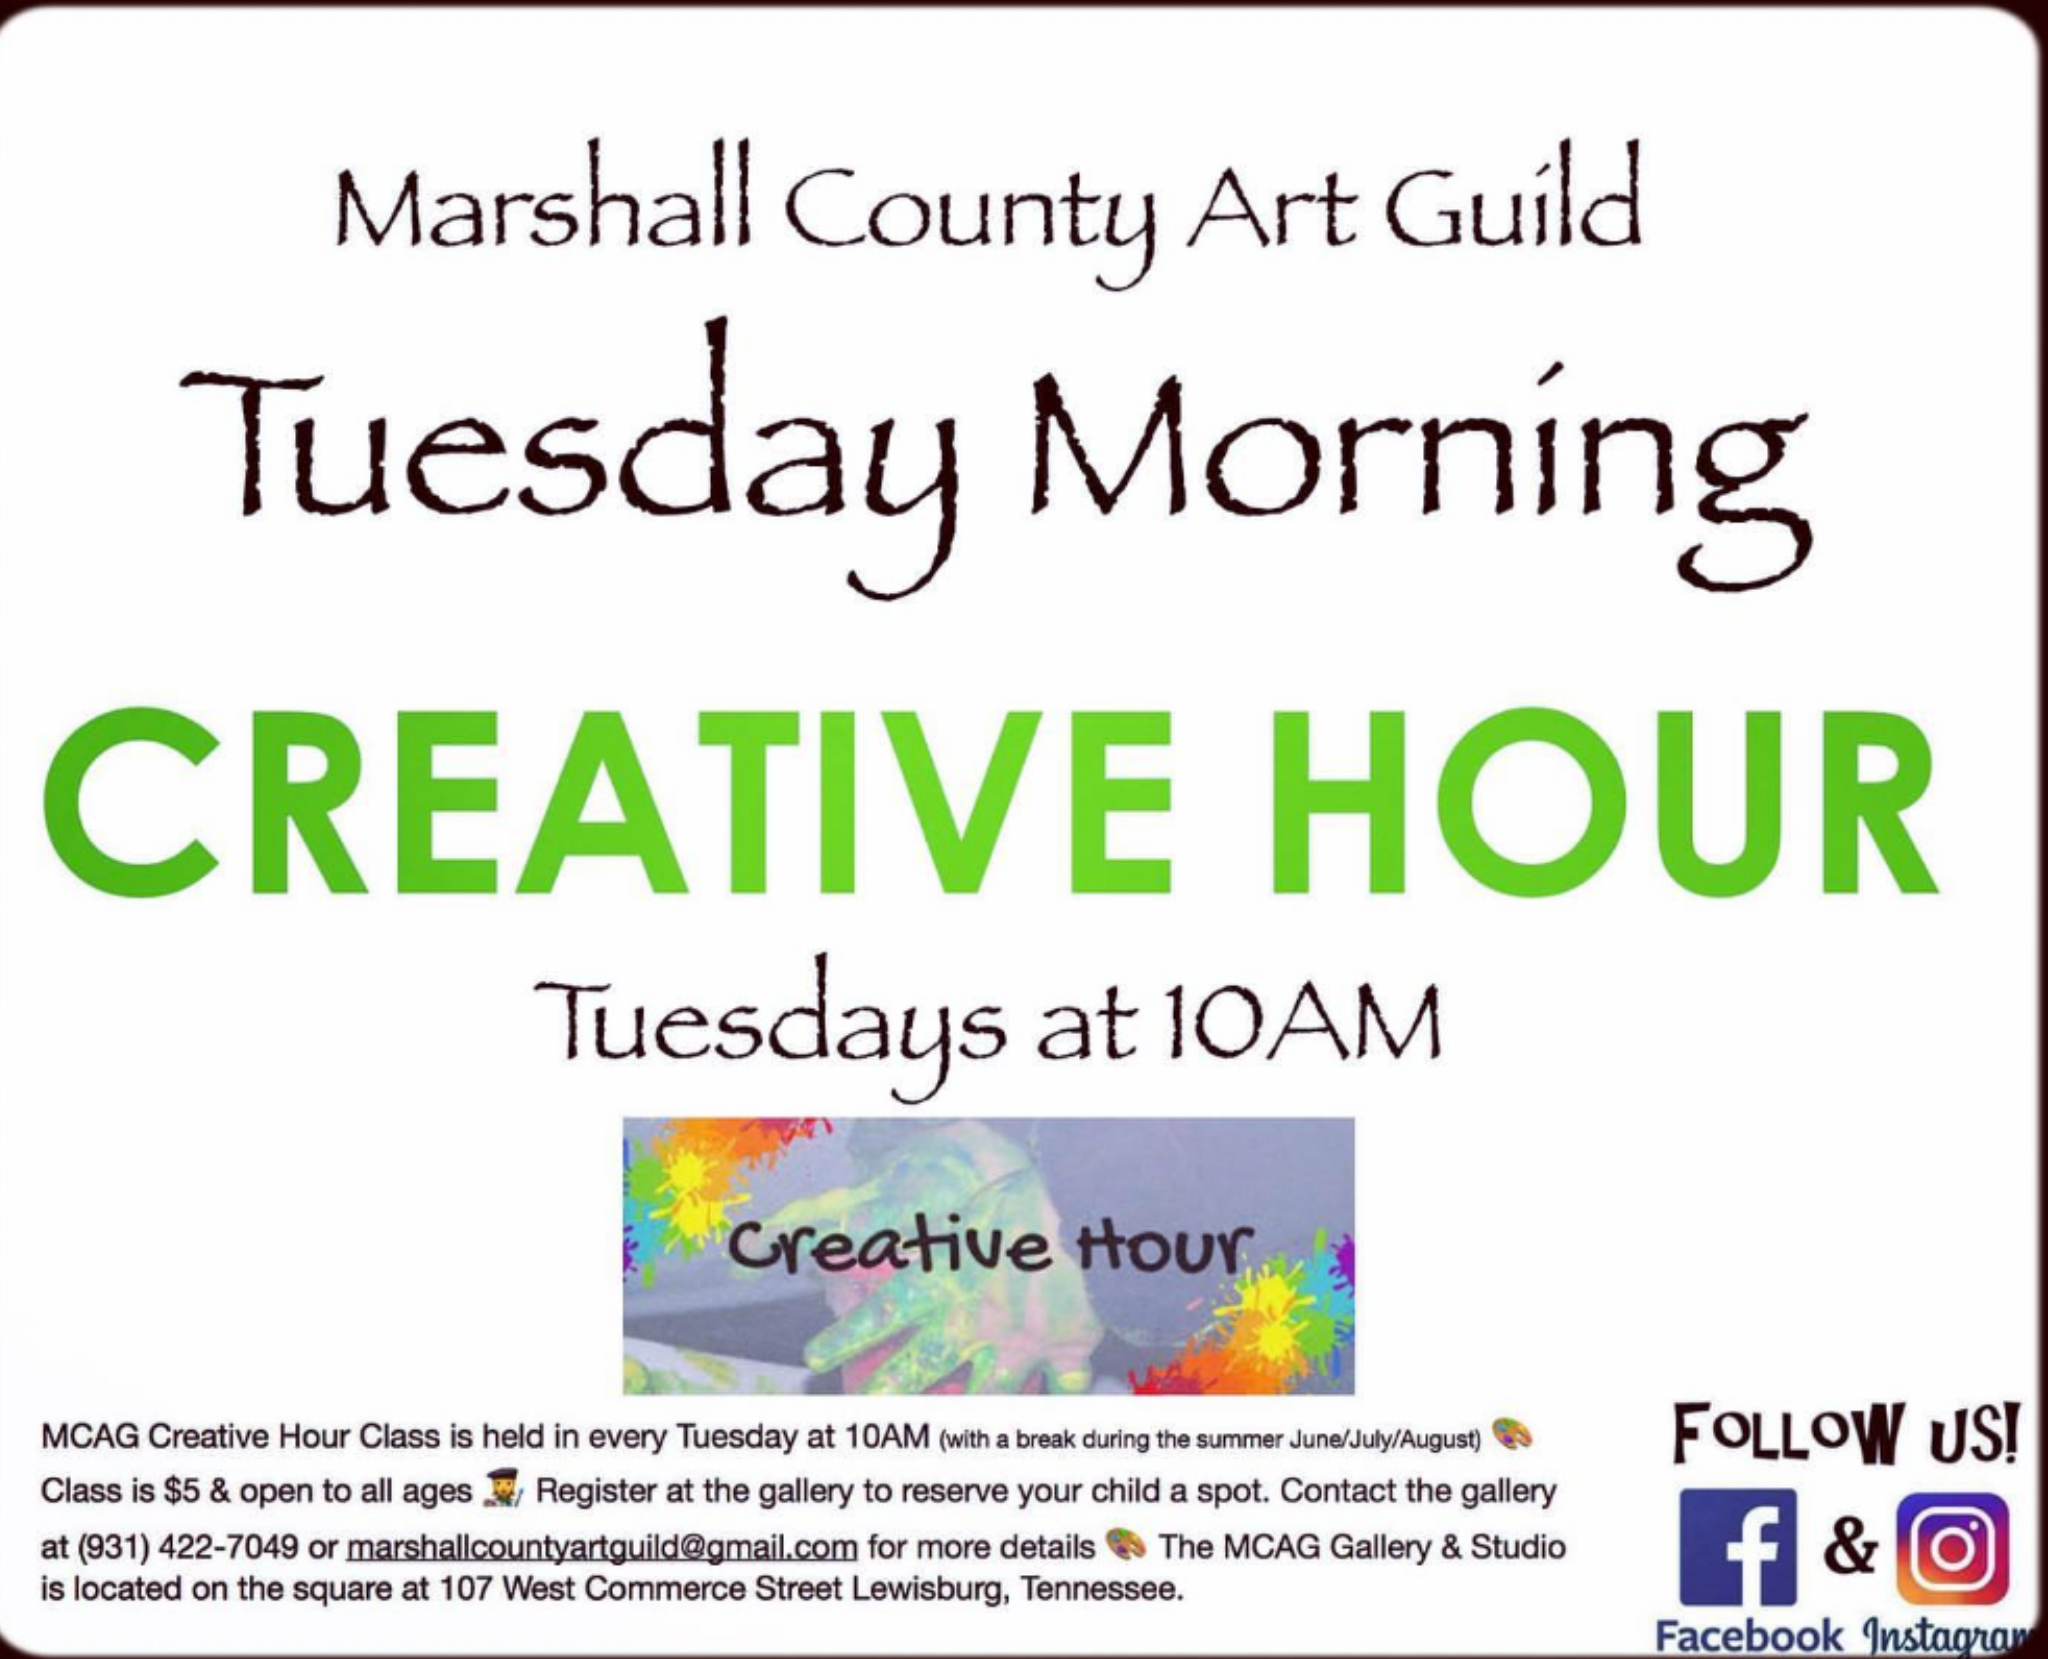 Art Guild Creative Hour